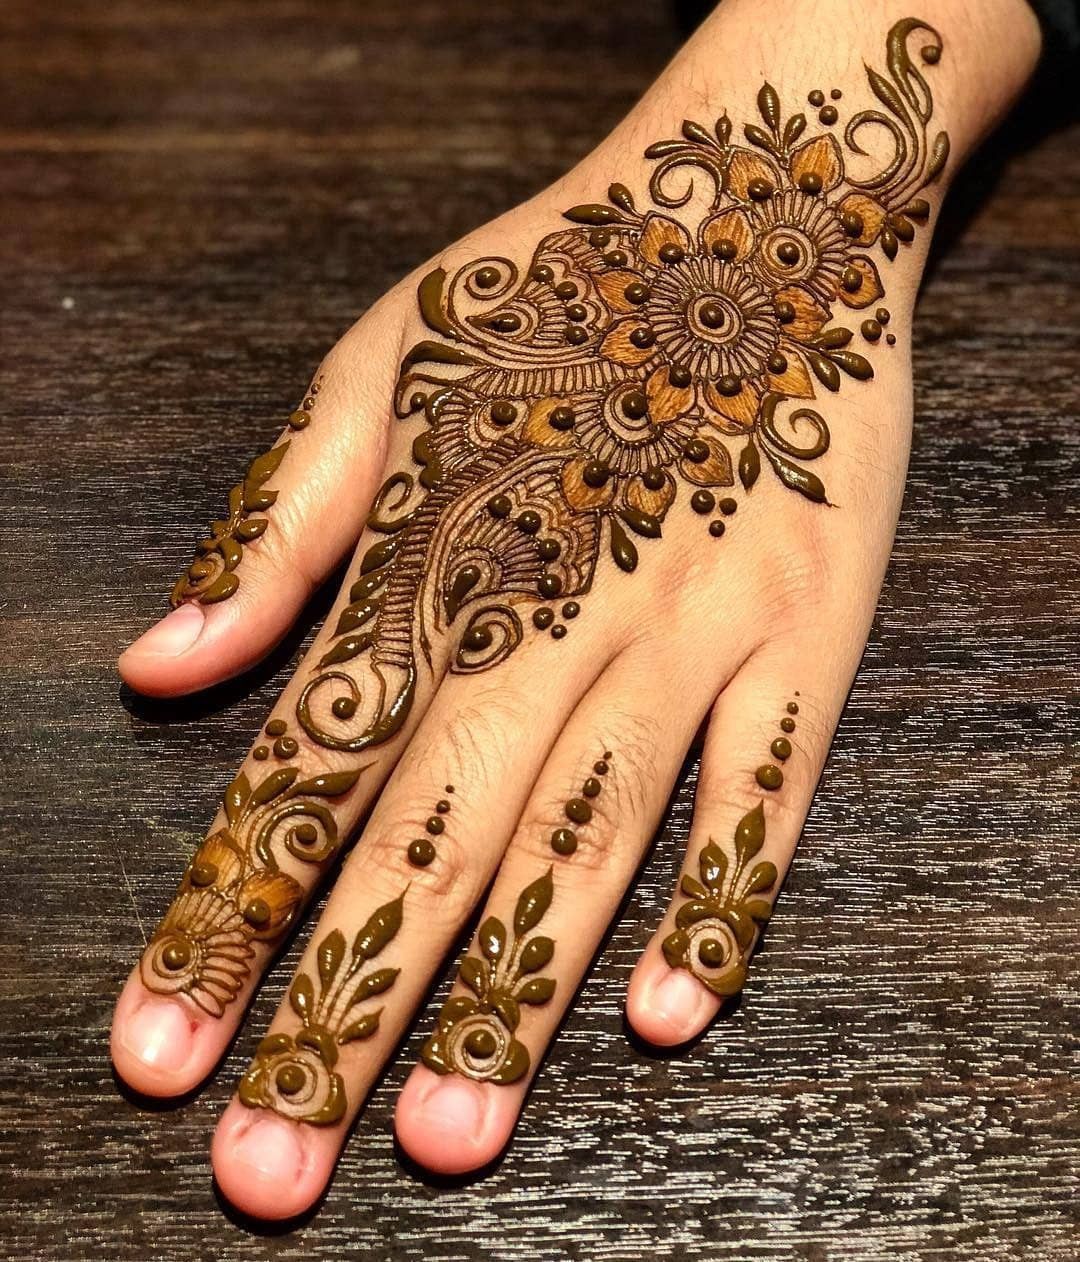 Henna arabic mehndi mehendi tattoos design pictures also stylish and attractive cone photos rh pinterest